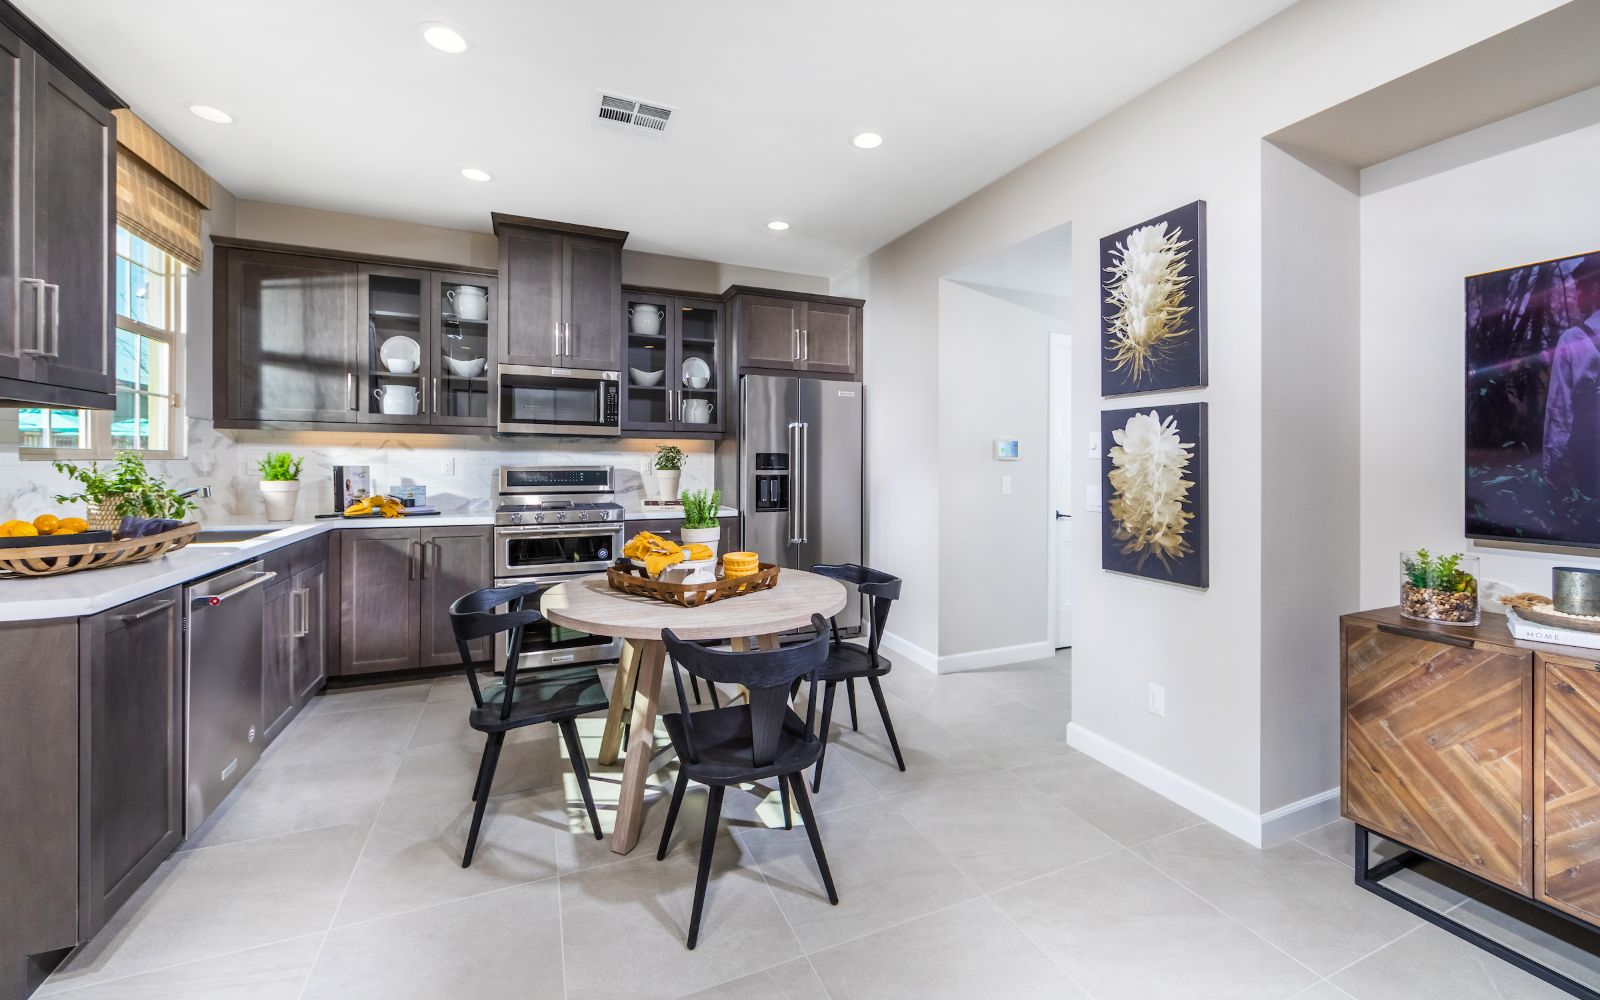 Towns Plan 5 Kitchen Lantana Beach in Stanton CA Brookfield Residential